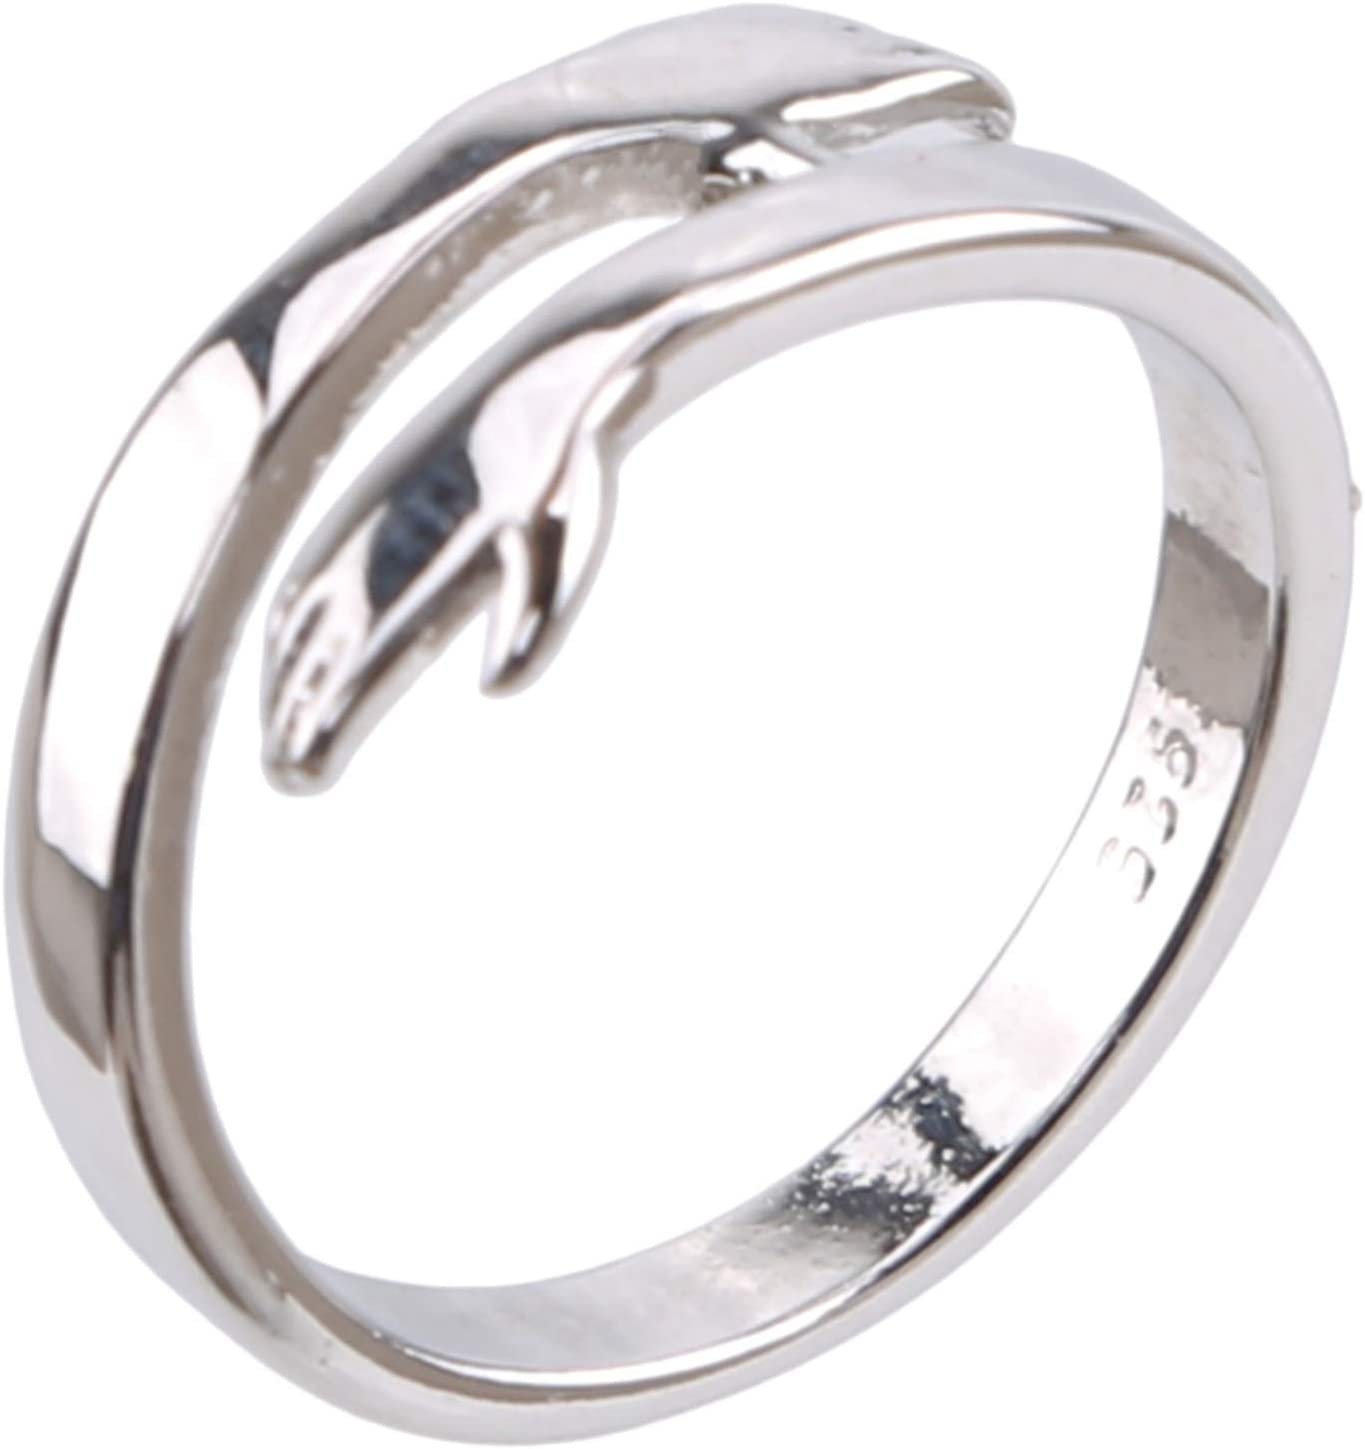 Cngstar Adjustable Embrace Ring Toe Ring Beach Jewelry Gifts for Women Girls